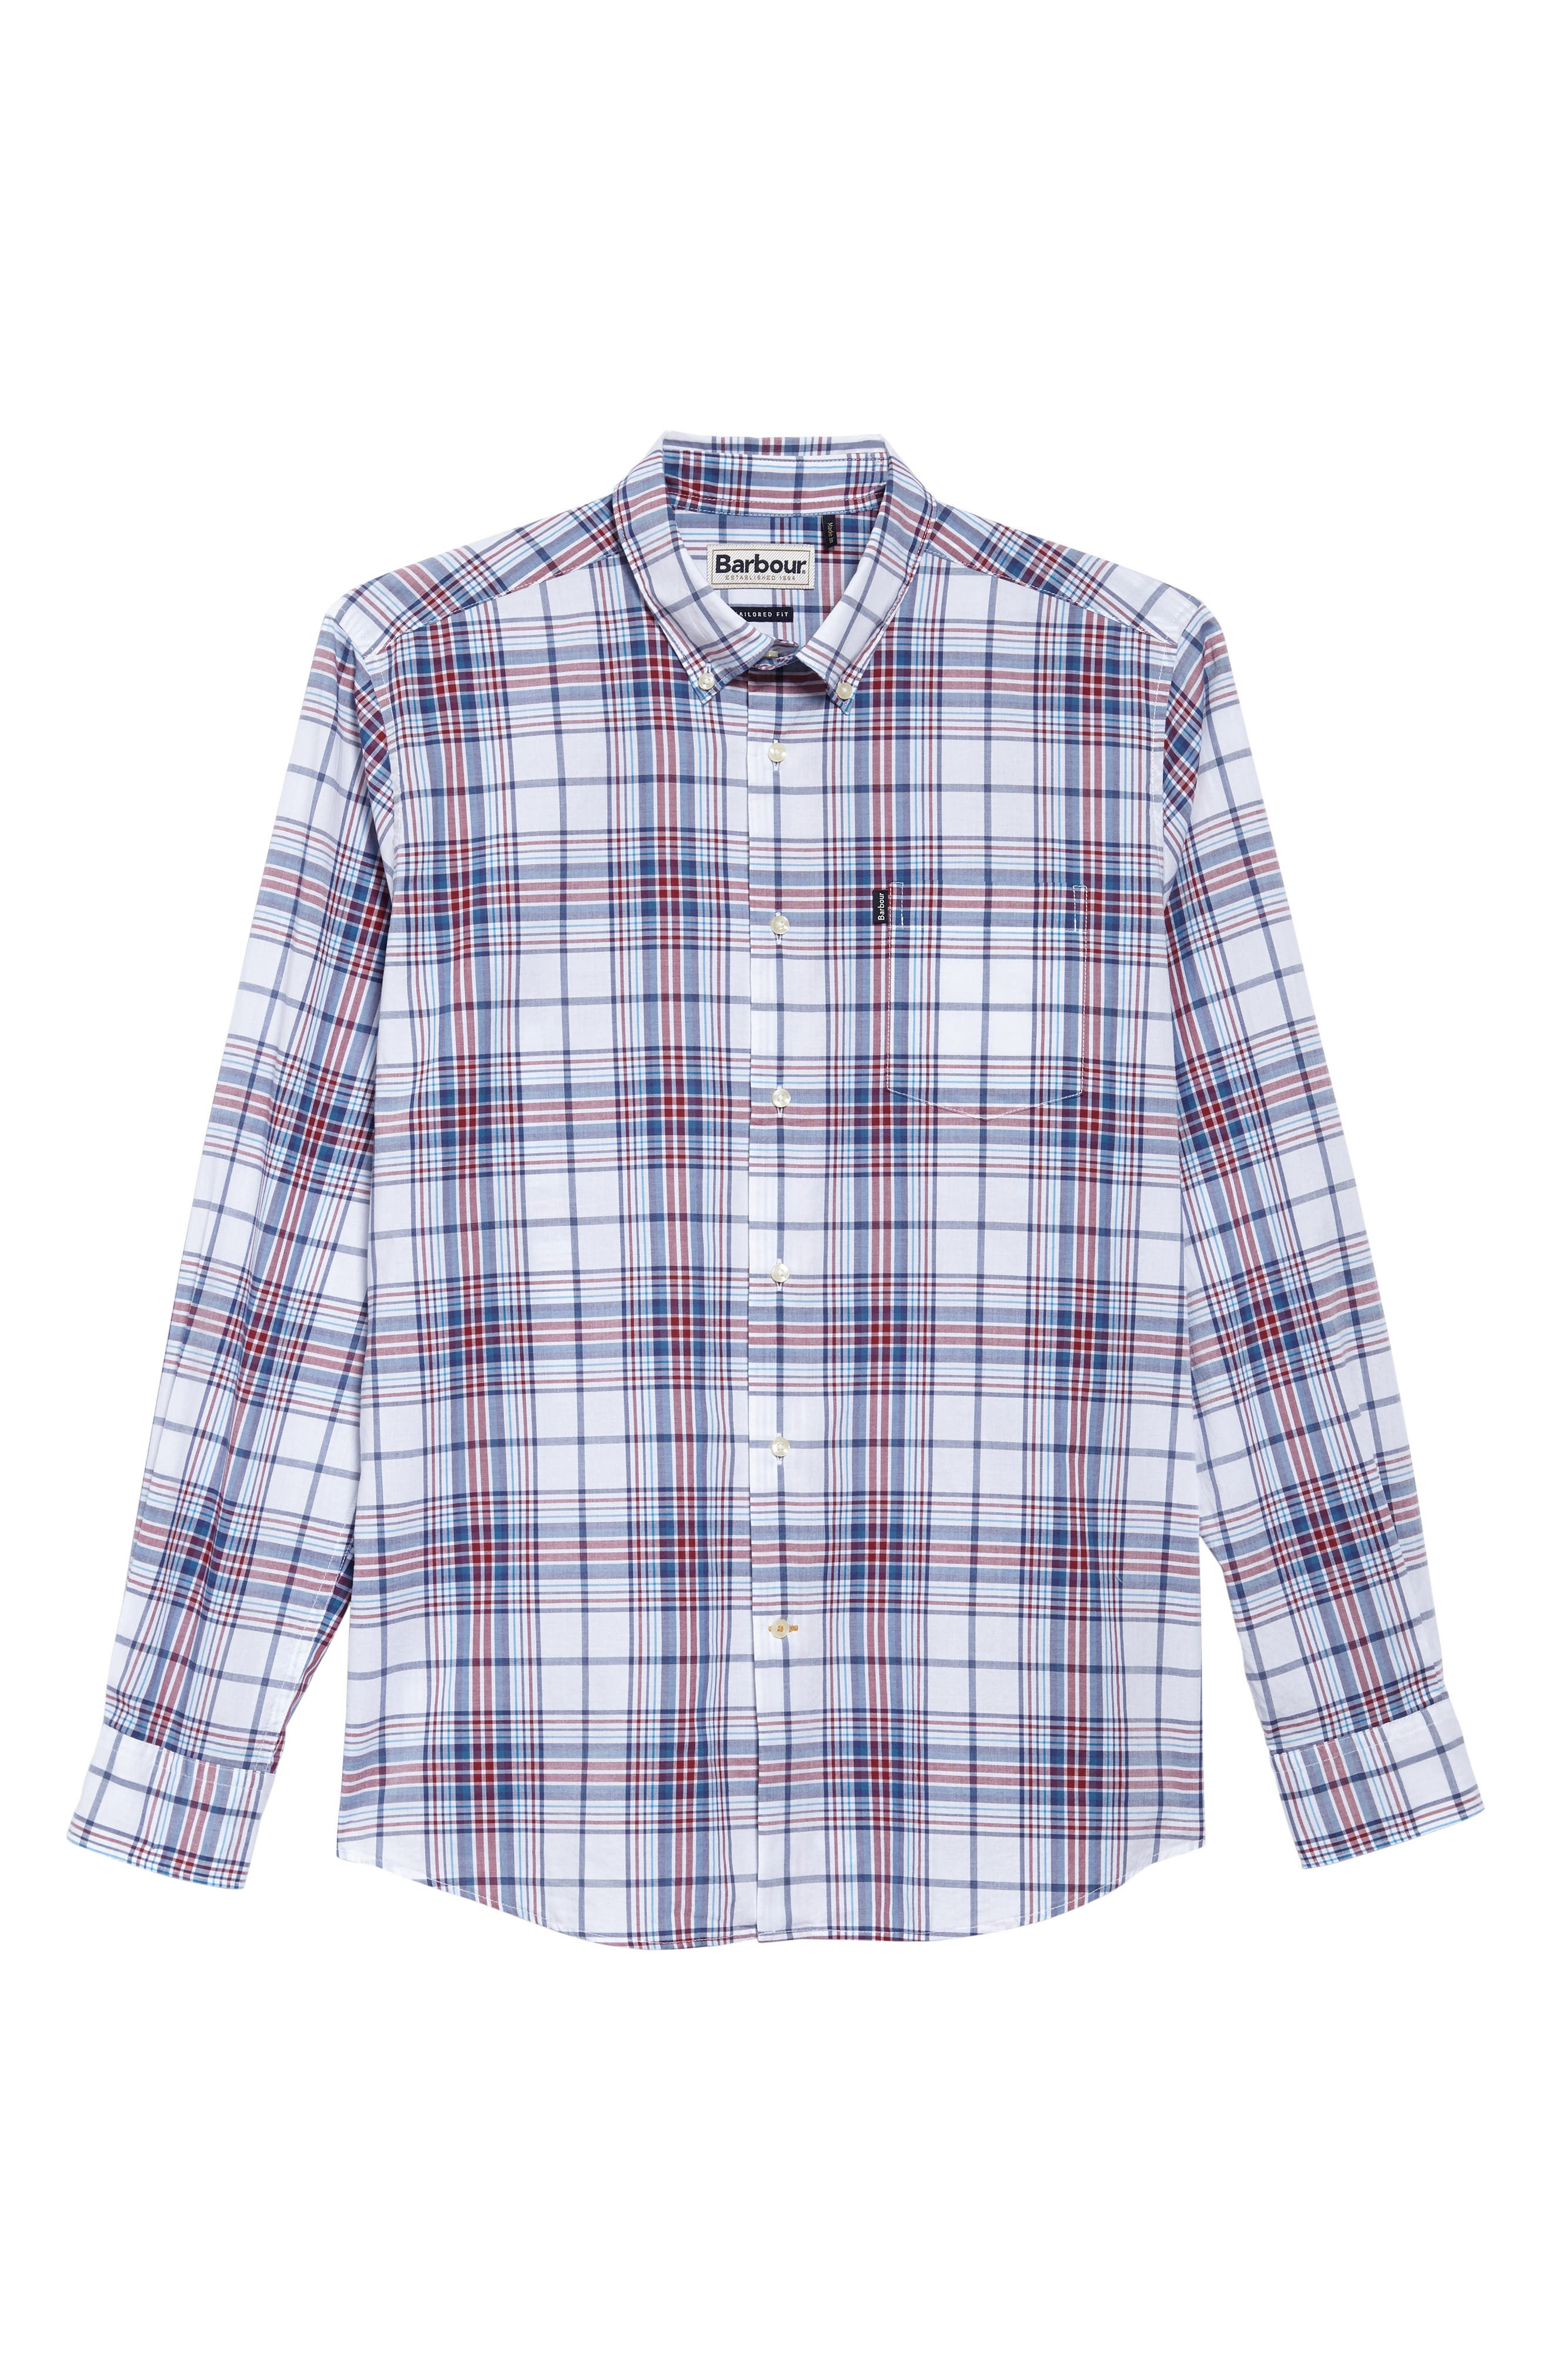 Christopher Tailored Fit Plaid Sport Shirt,                             Alternate thumbnail 5, color,                             Biking Red